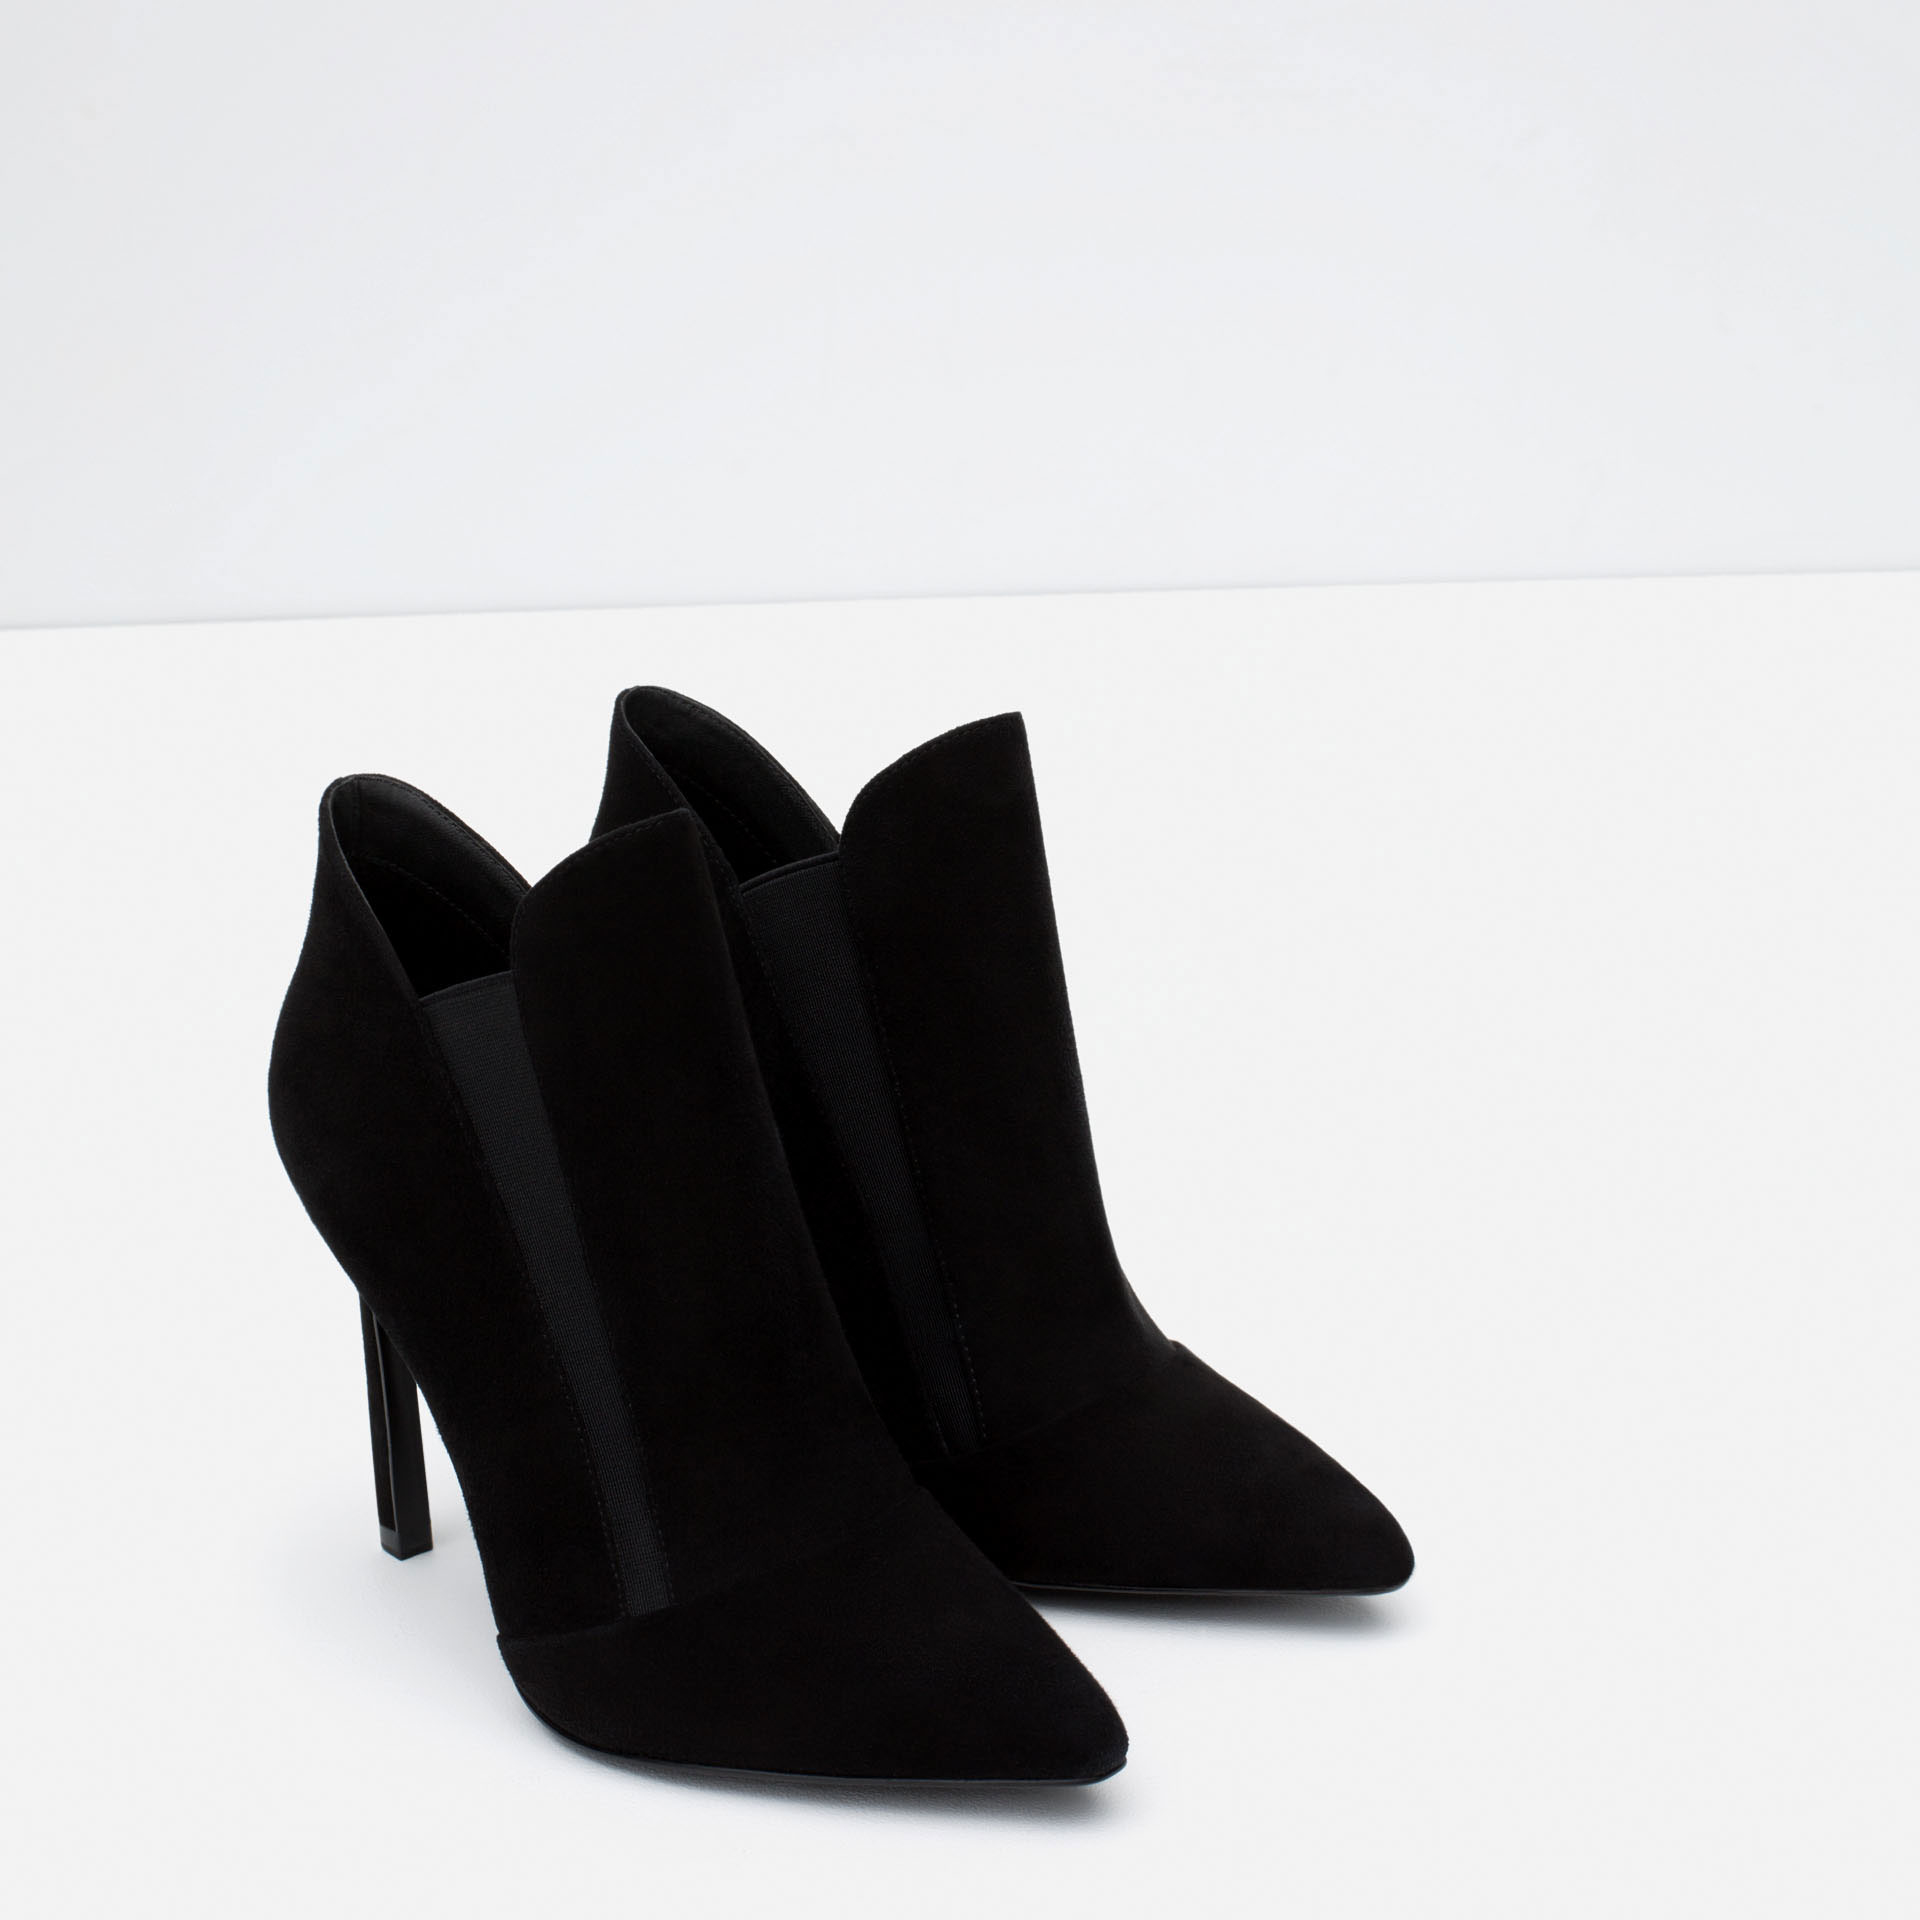 zara high heel stretch leather ankle boot in black lyst